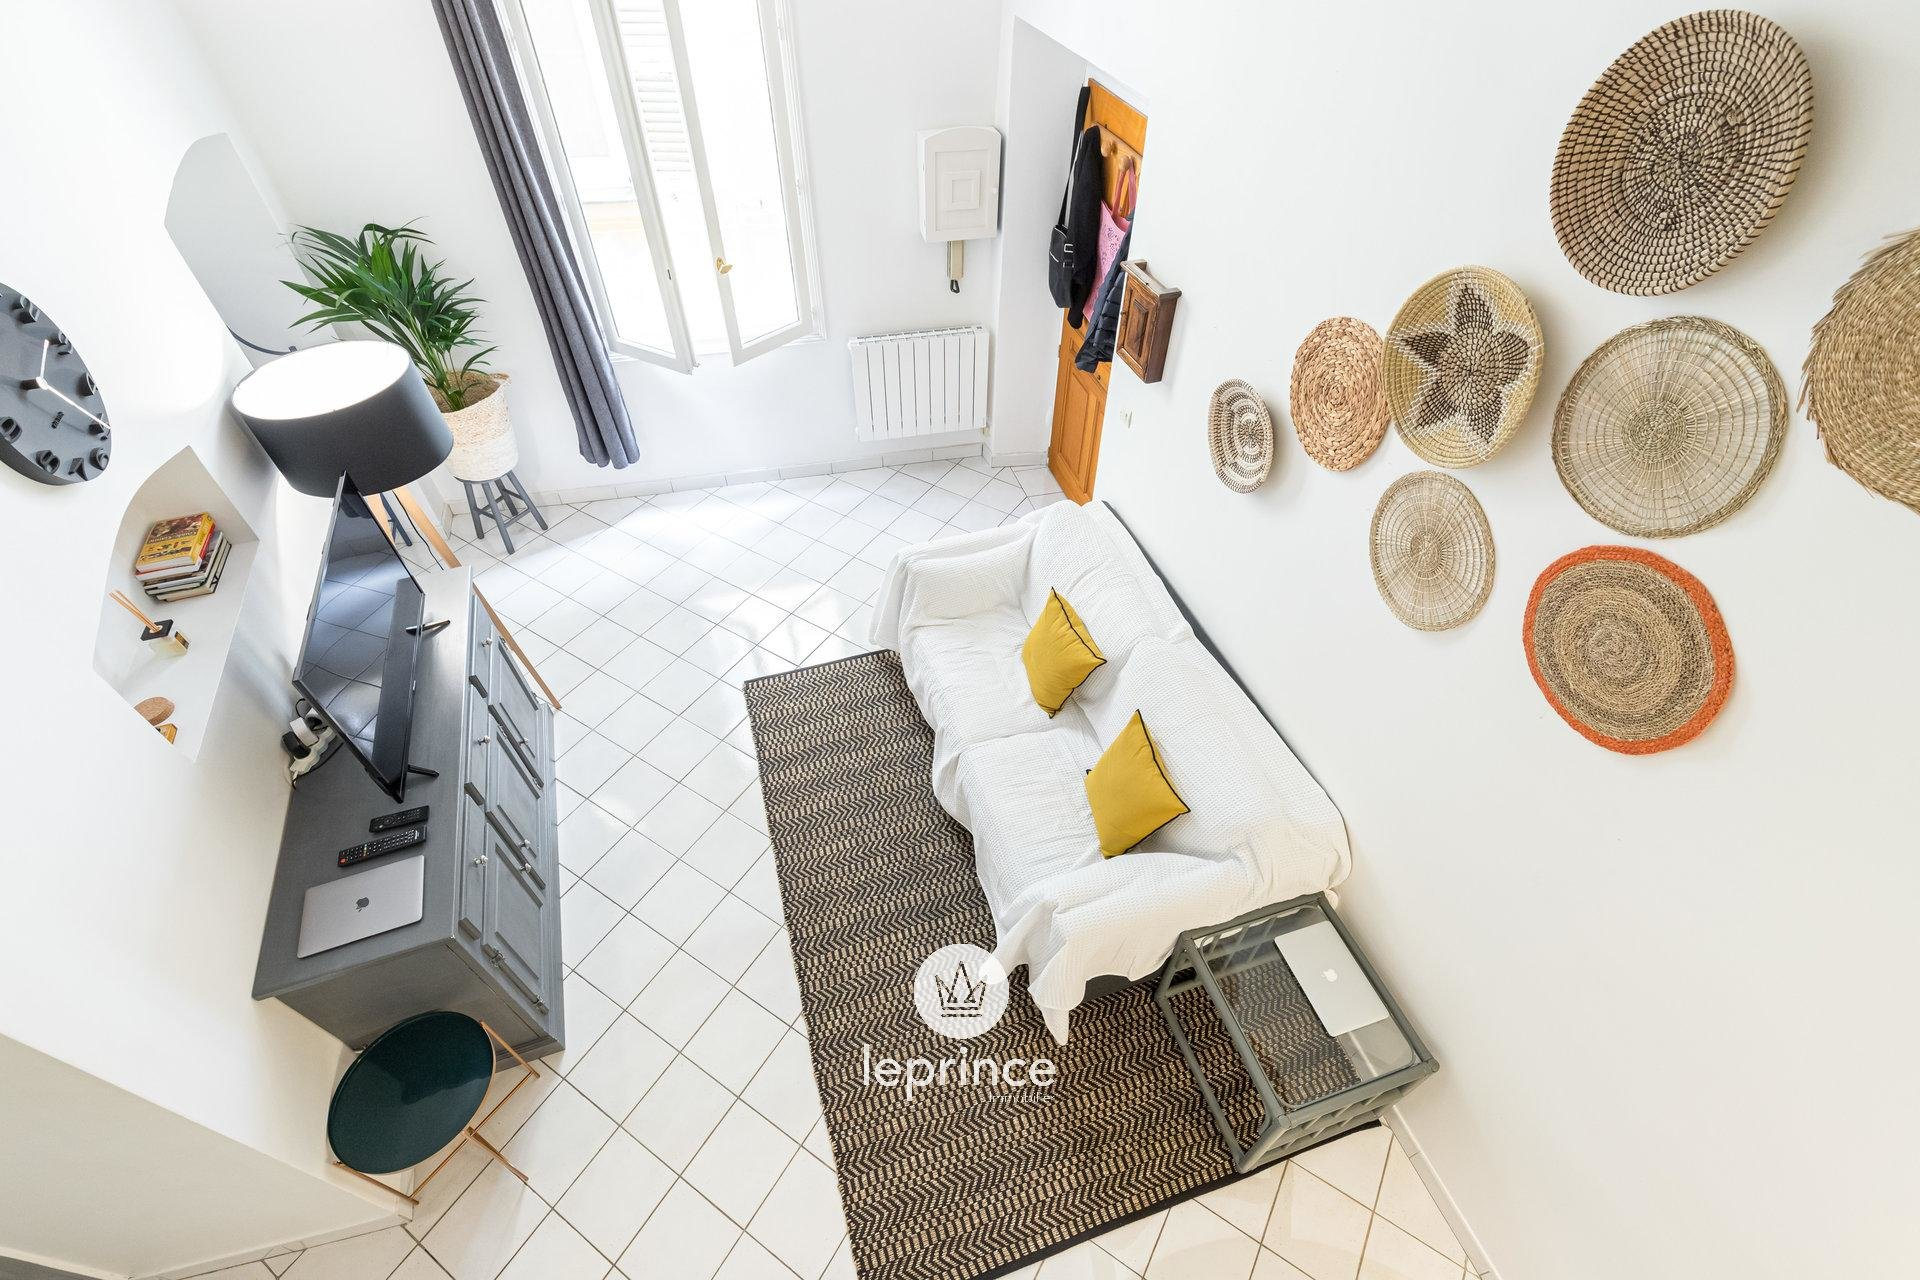 Nice / Vieux Nice  -  3 room apartment with Mezzanine in very good condition.